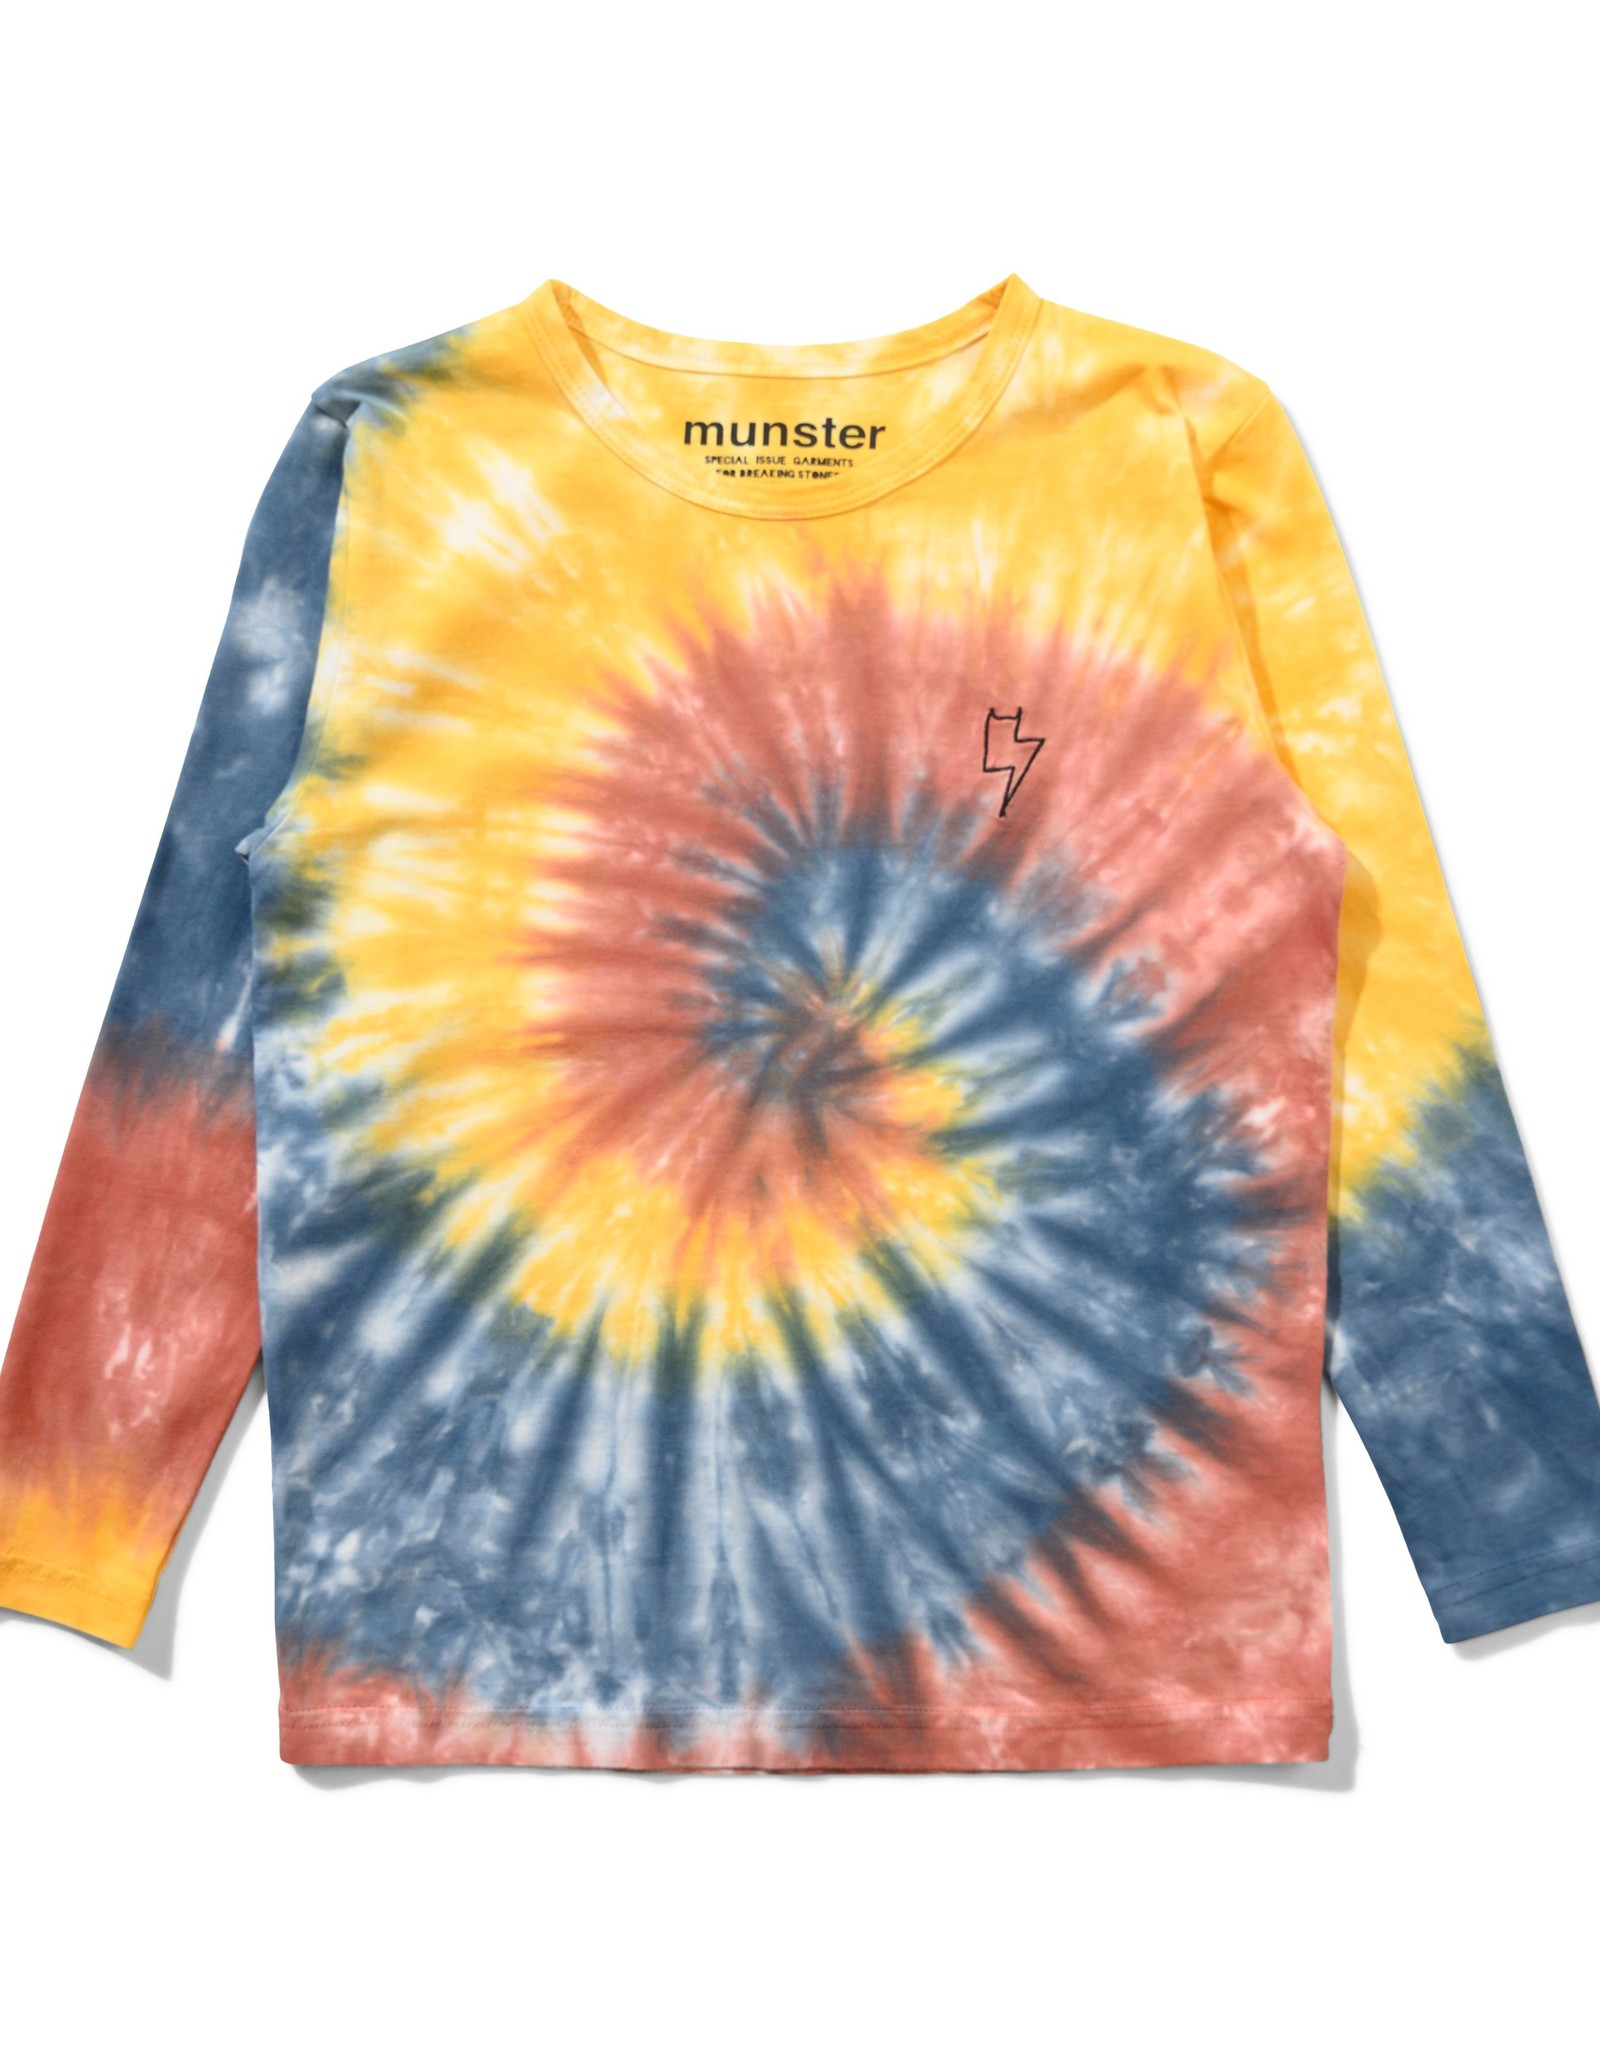 Munster Kids out of control l/s tee- rust dye